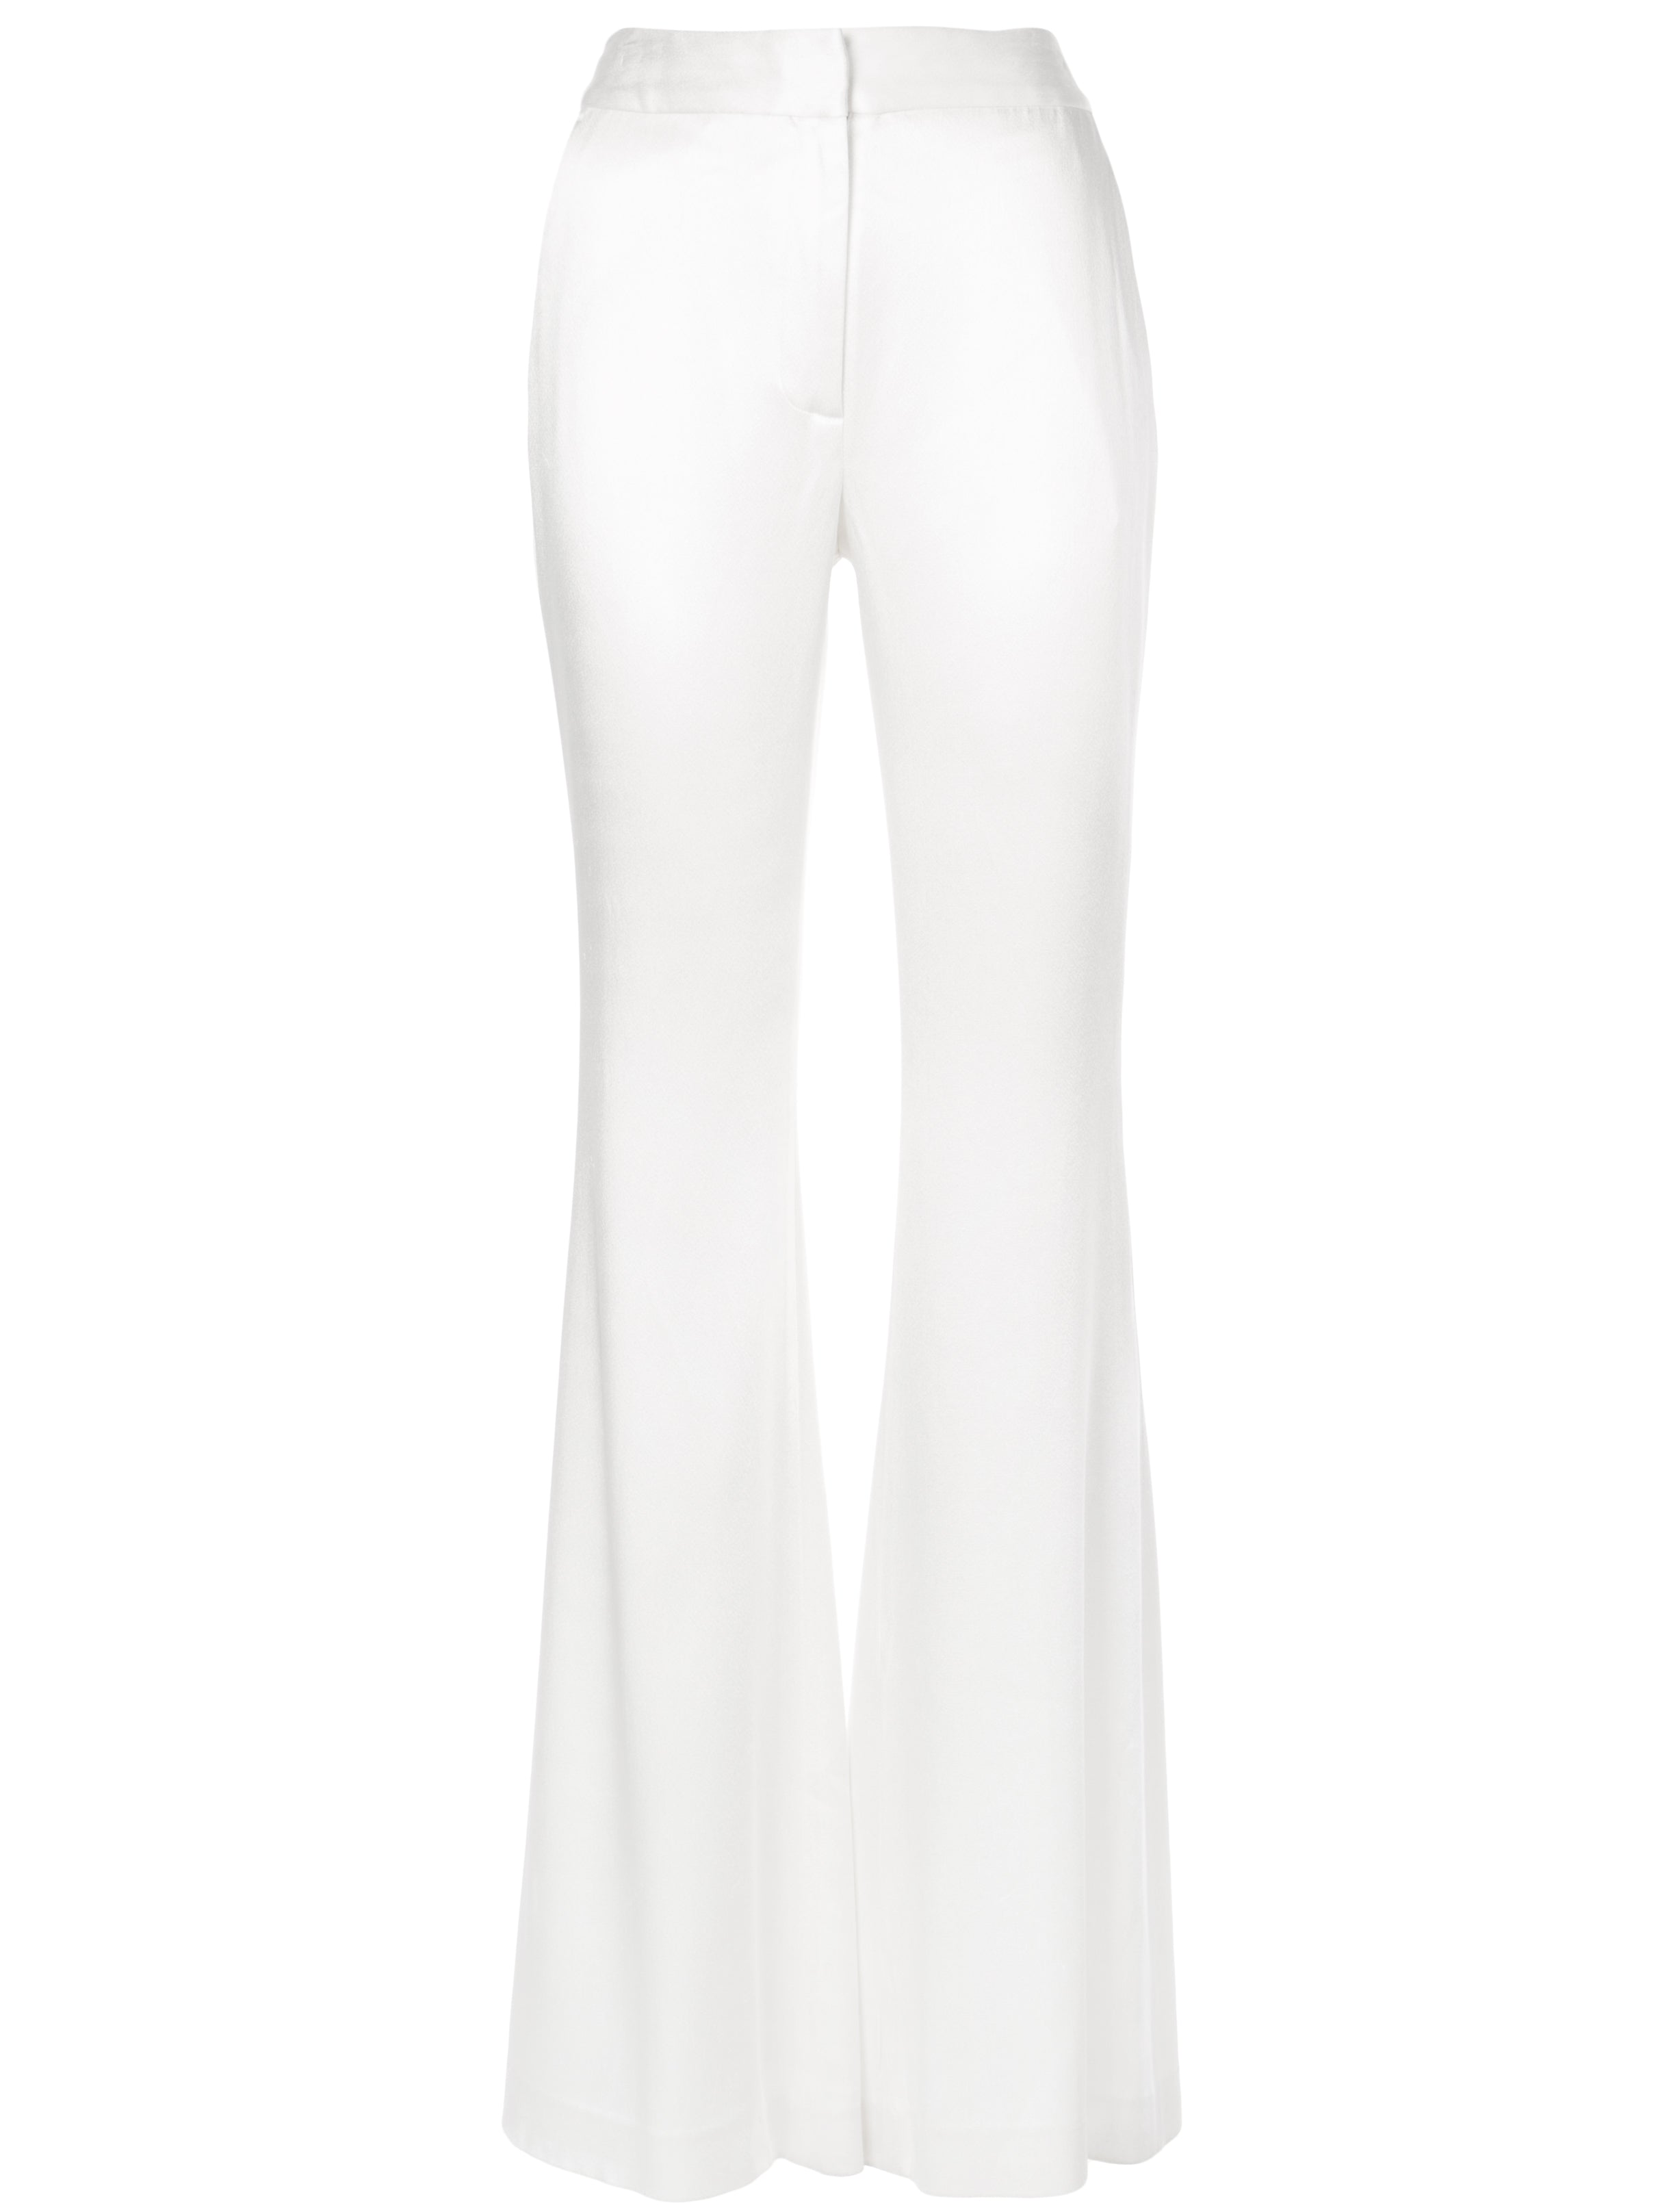 DOUBLE HAMMERED SATIN FLARED PANT